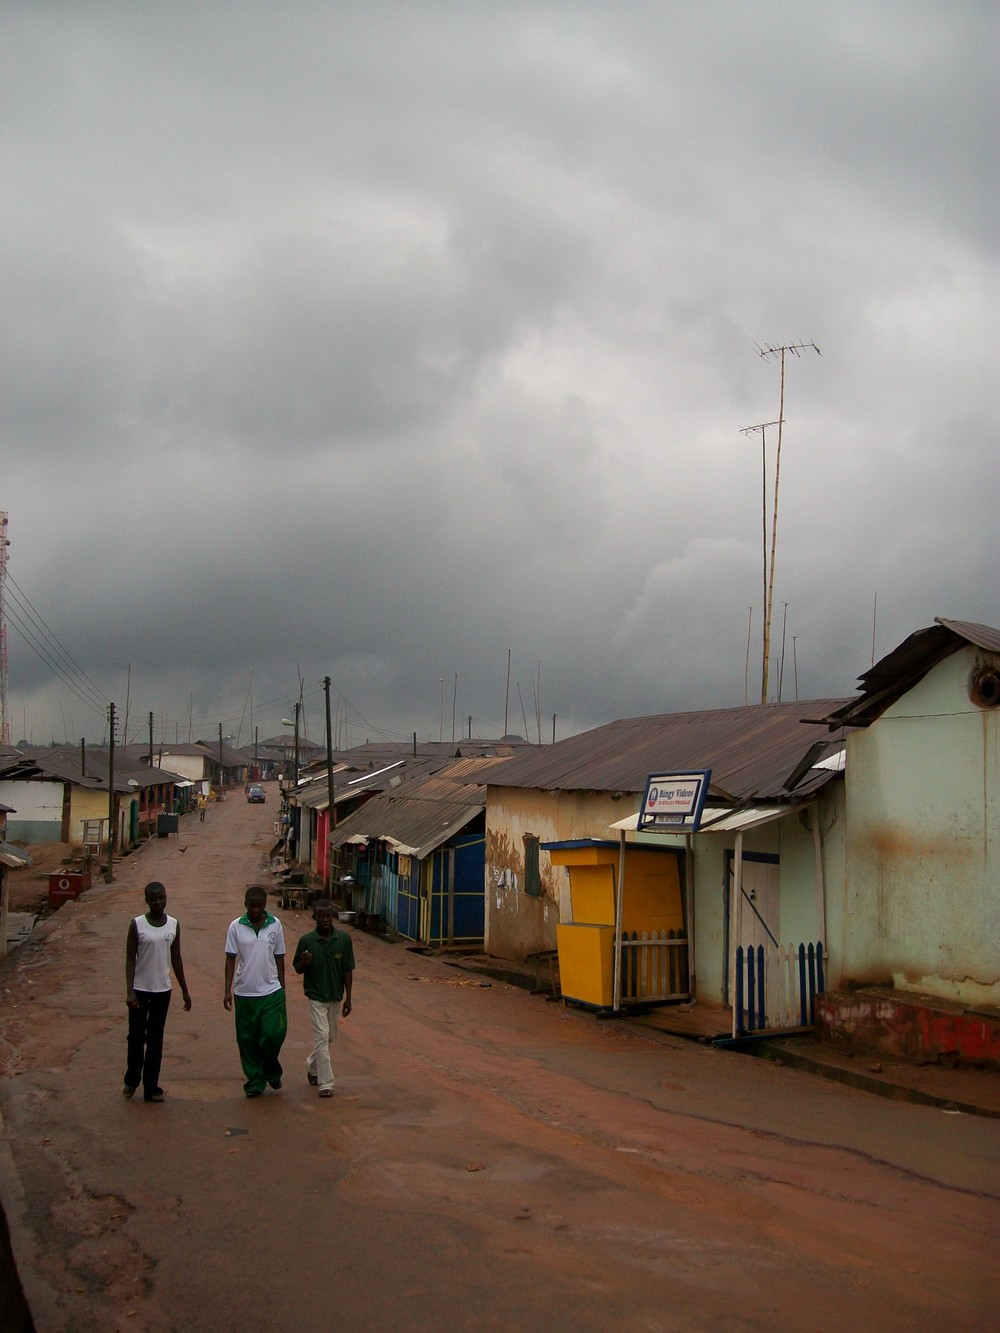 A street scene in rural Central Region, Ghana, before a rainstorm, 2010. Photo by M. Sophia Newman